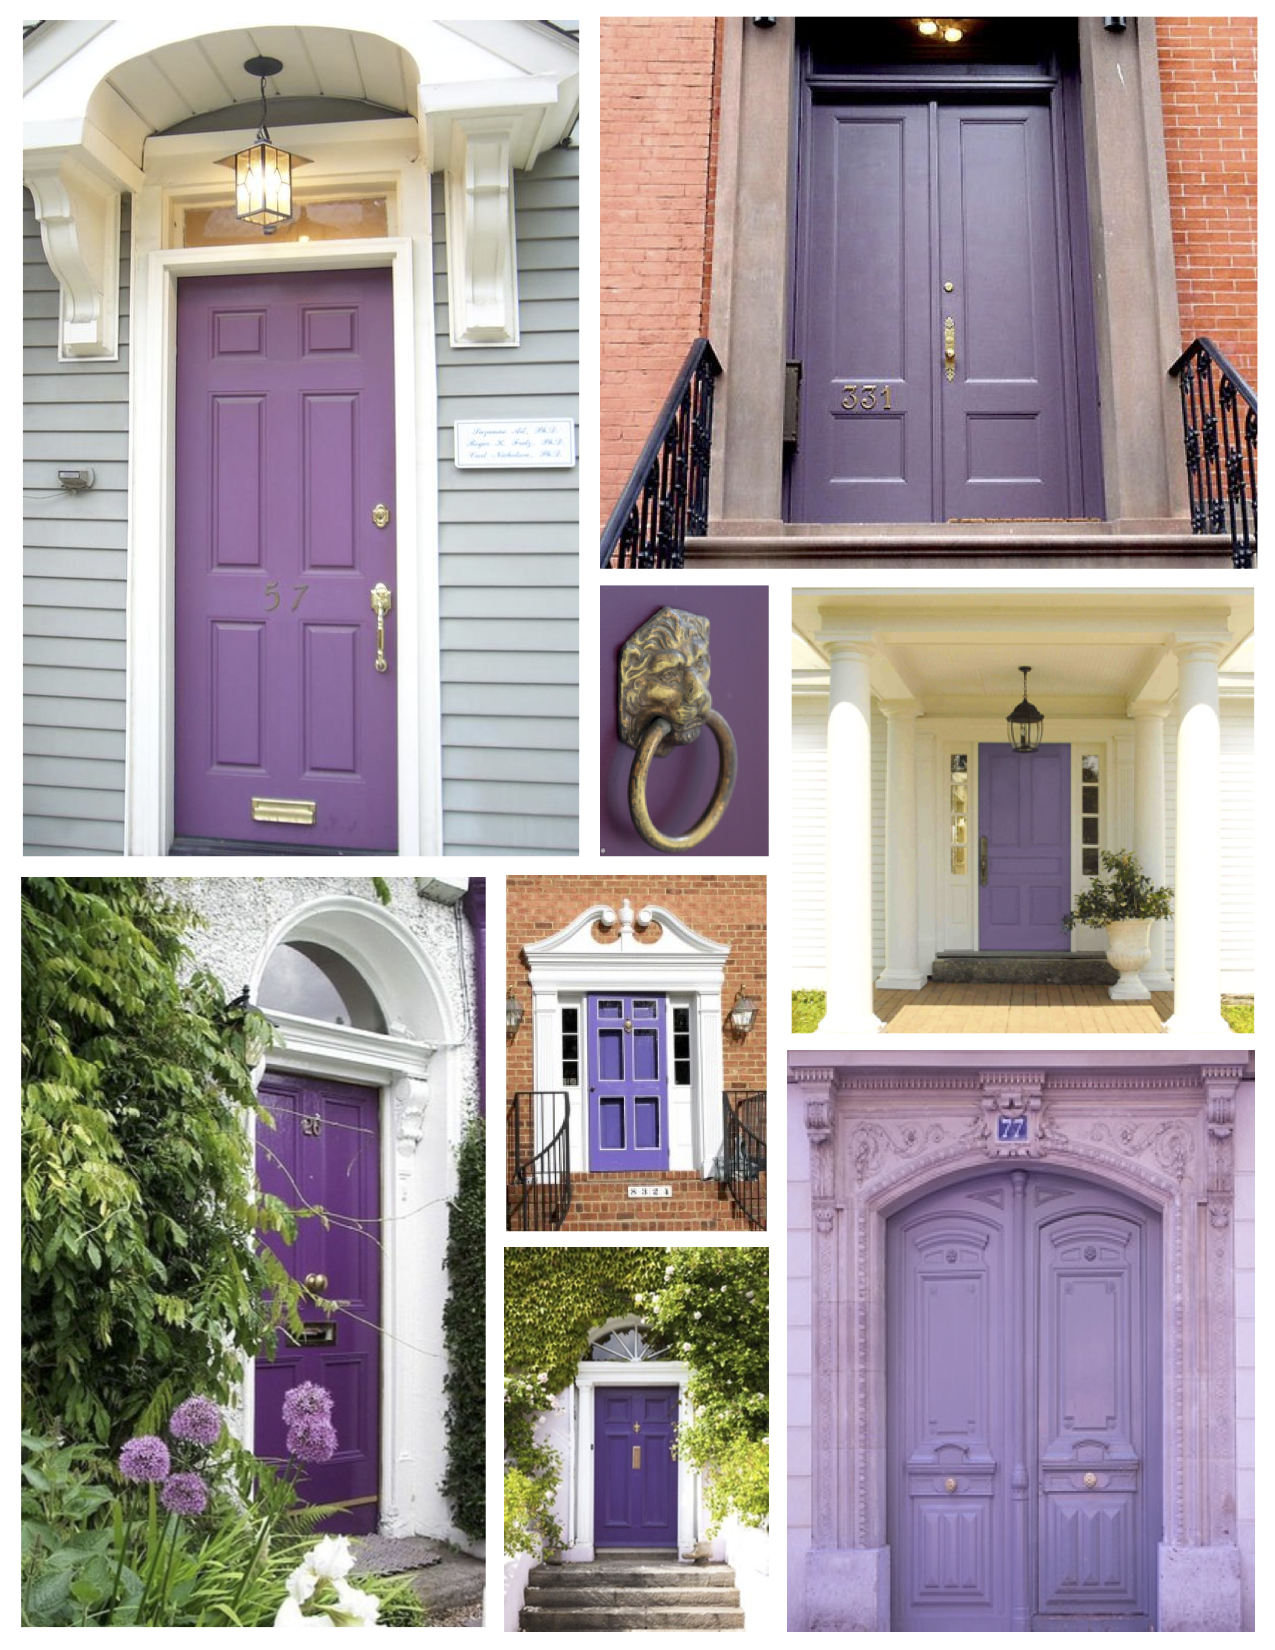 exterior door | House Appeal